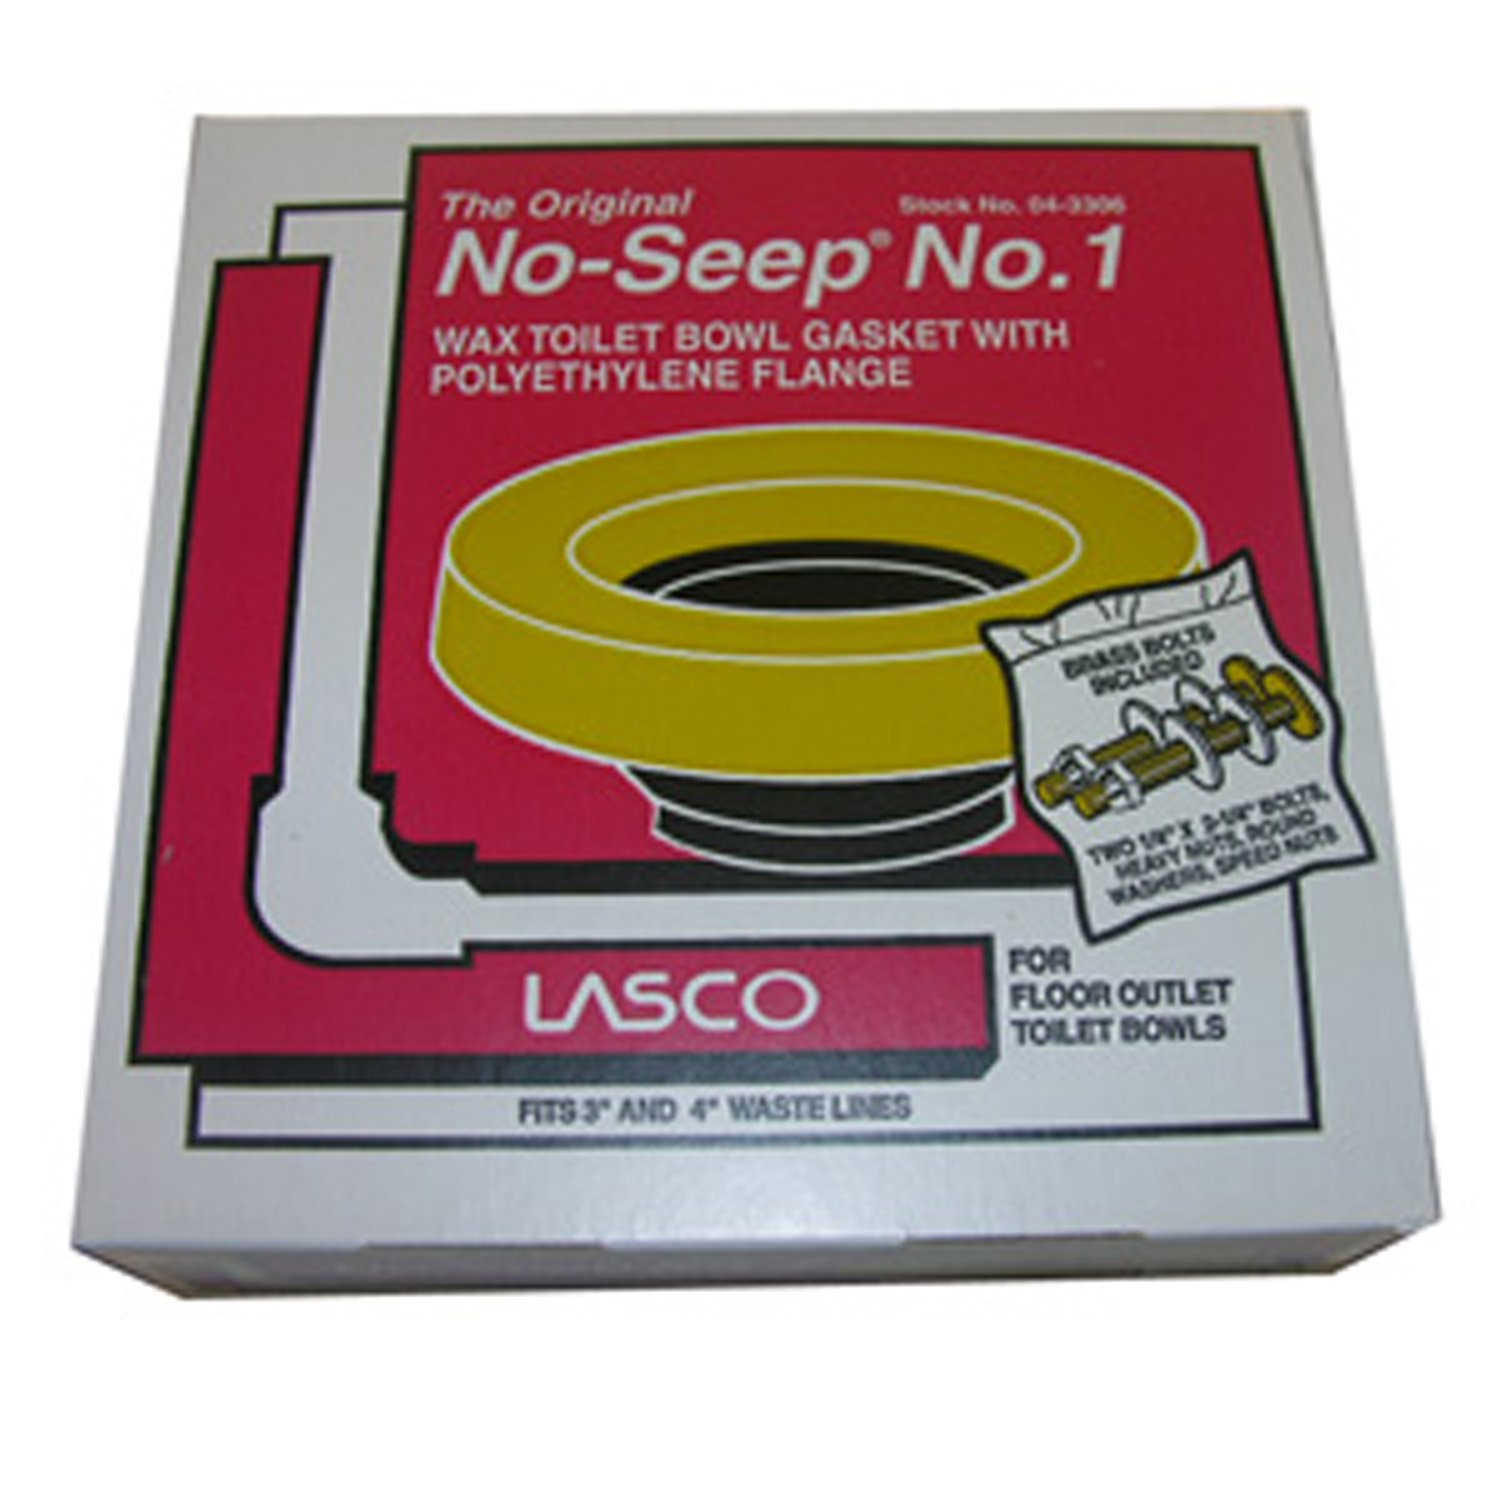 LASCO 04-3306-MASTER Bowl Wax Ring #1, with Polyethylene Flange, Fits 3 4-Inch Waste Line, Brass Toilet Bolts Included, 24-Pack by LASCO